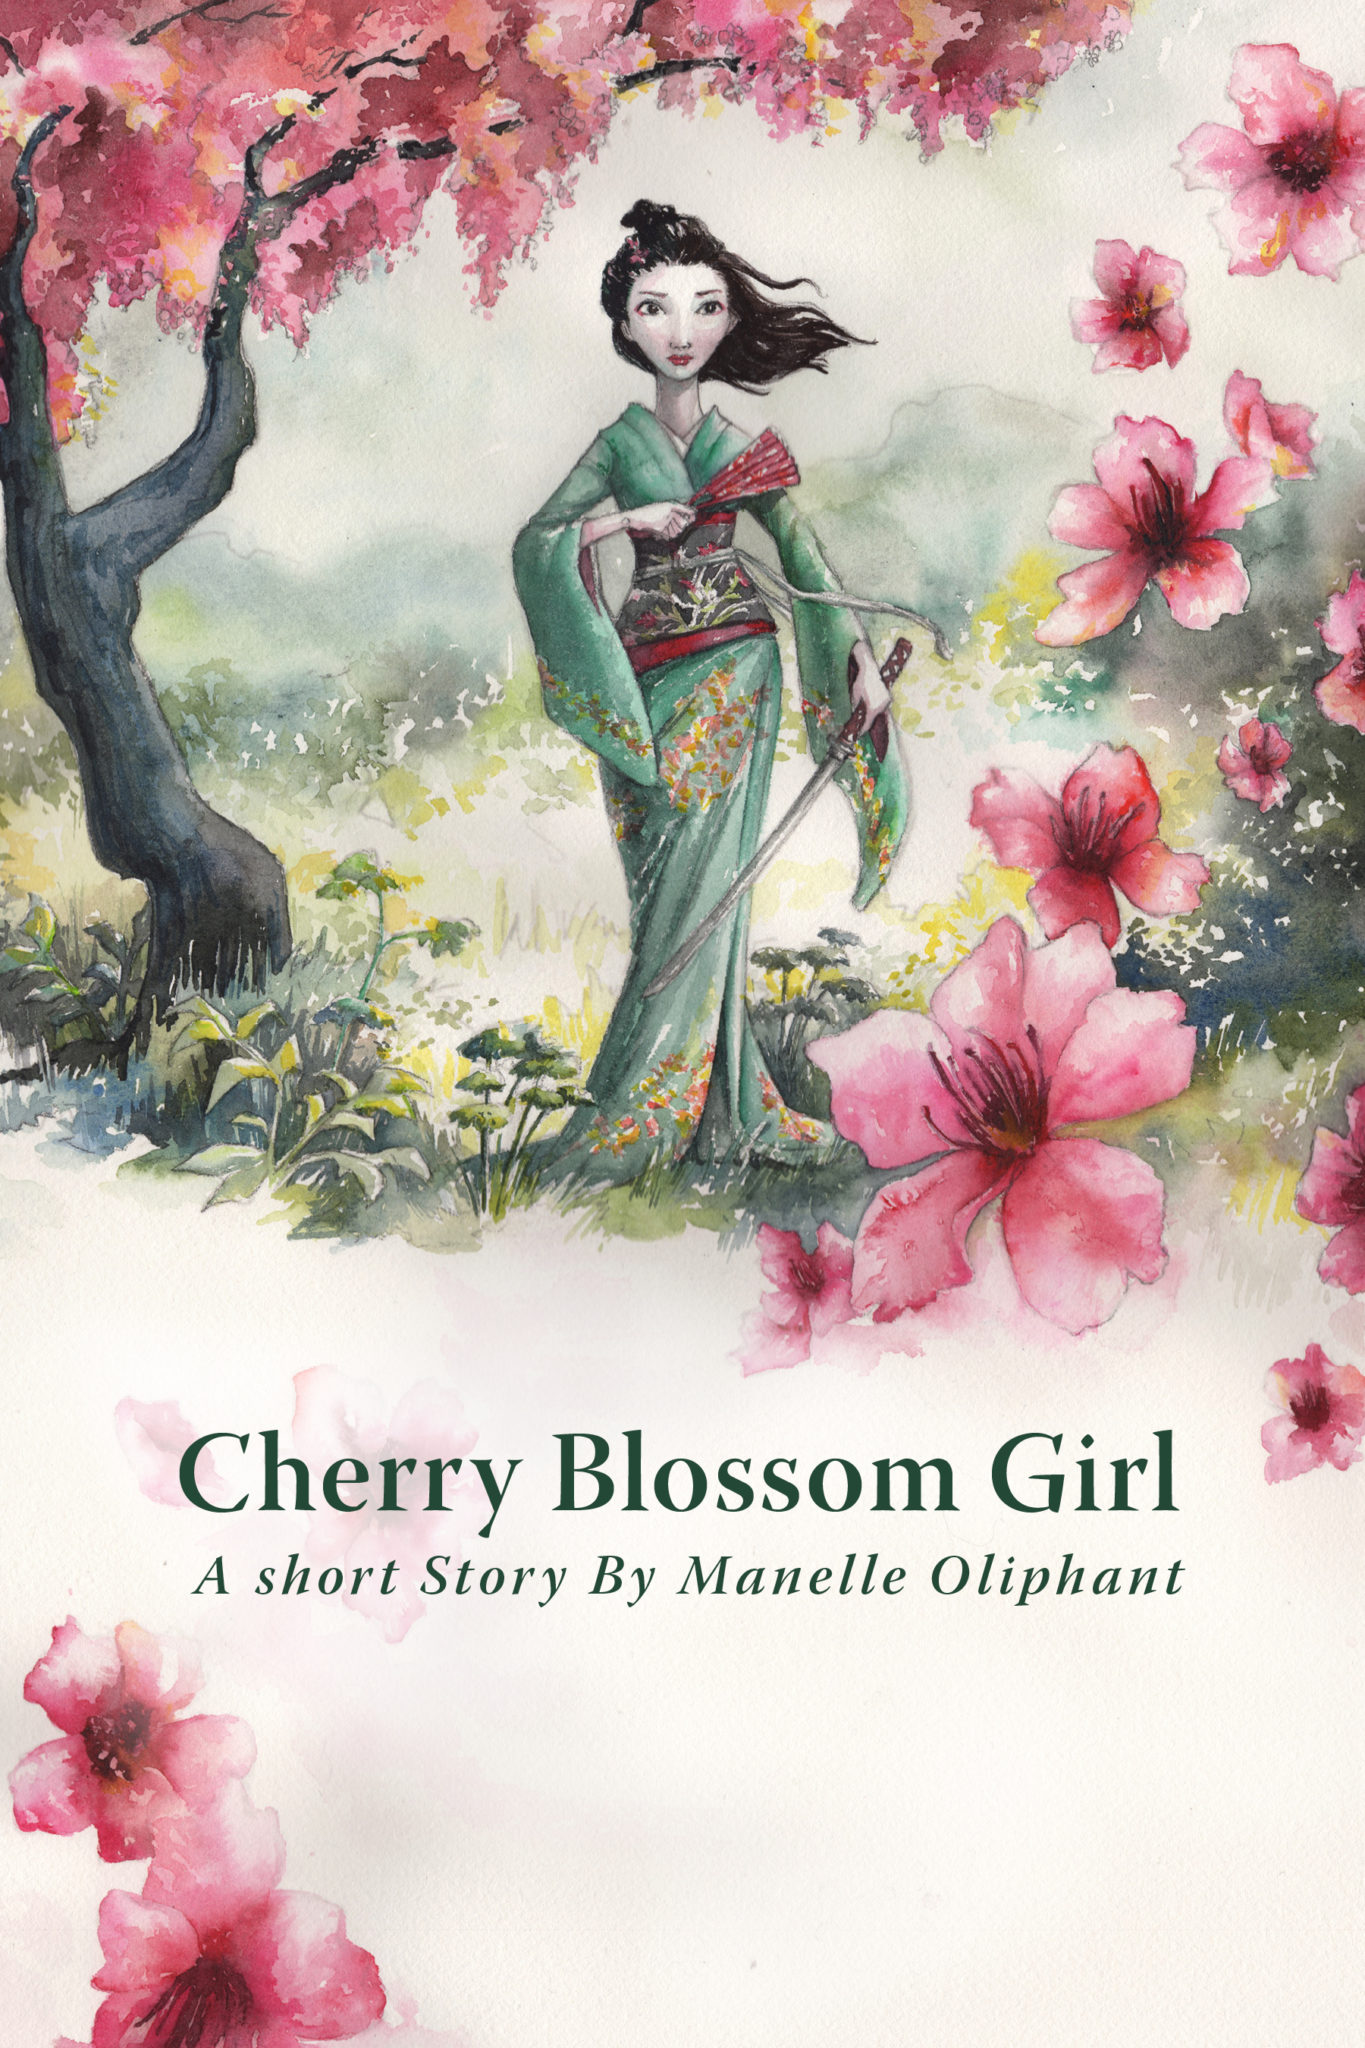 Cherry Blossom Girl by Manelle Oliphant